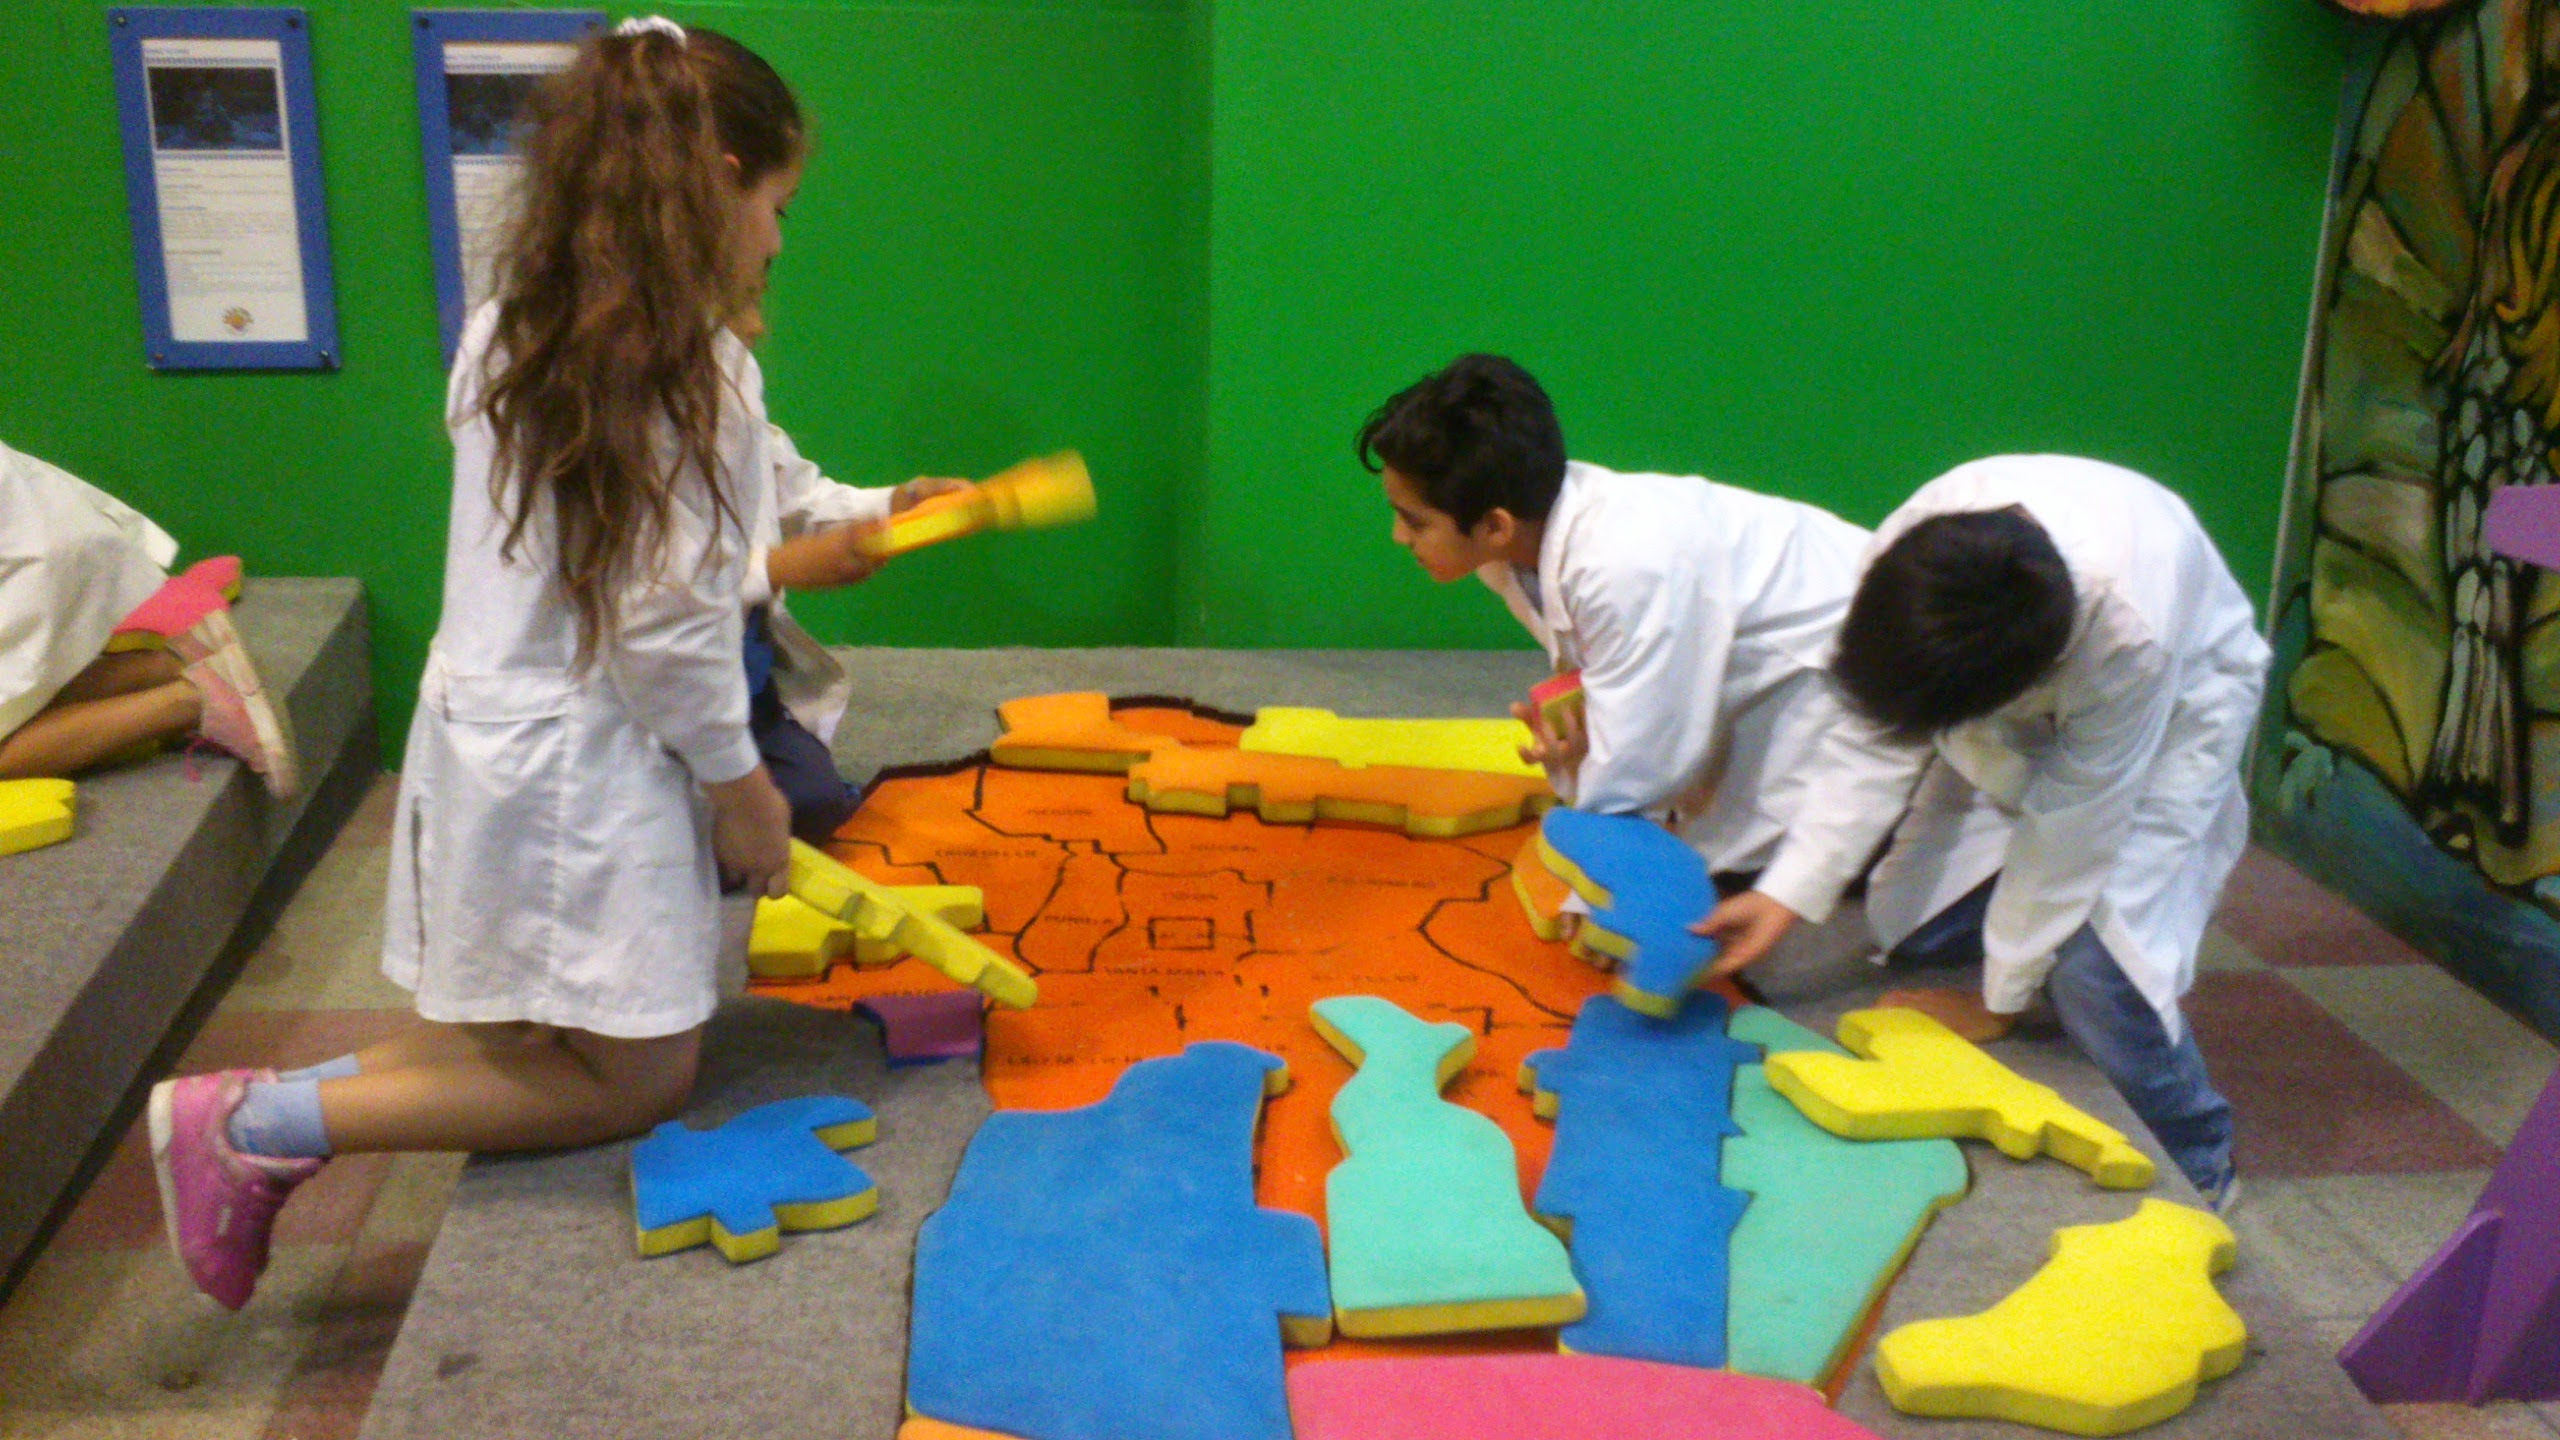 Going to the Children's Museum is one of the things to do in Puerto Rico with kids